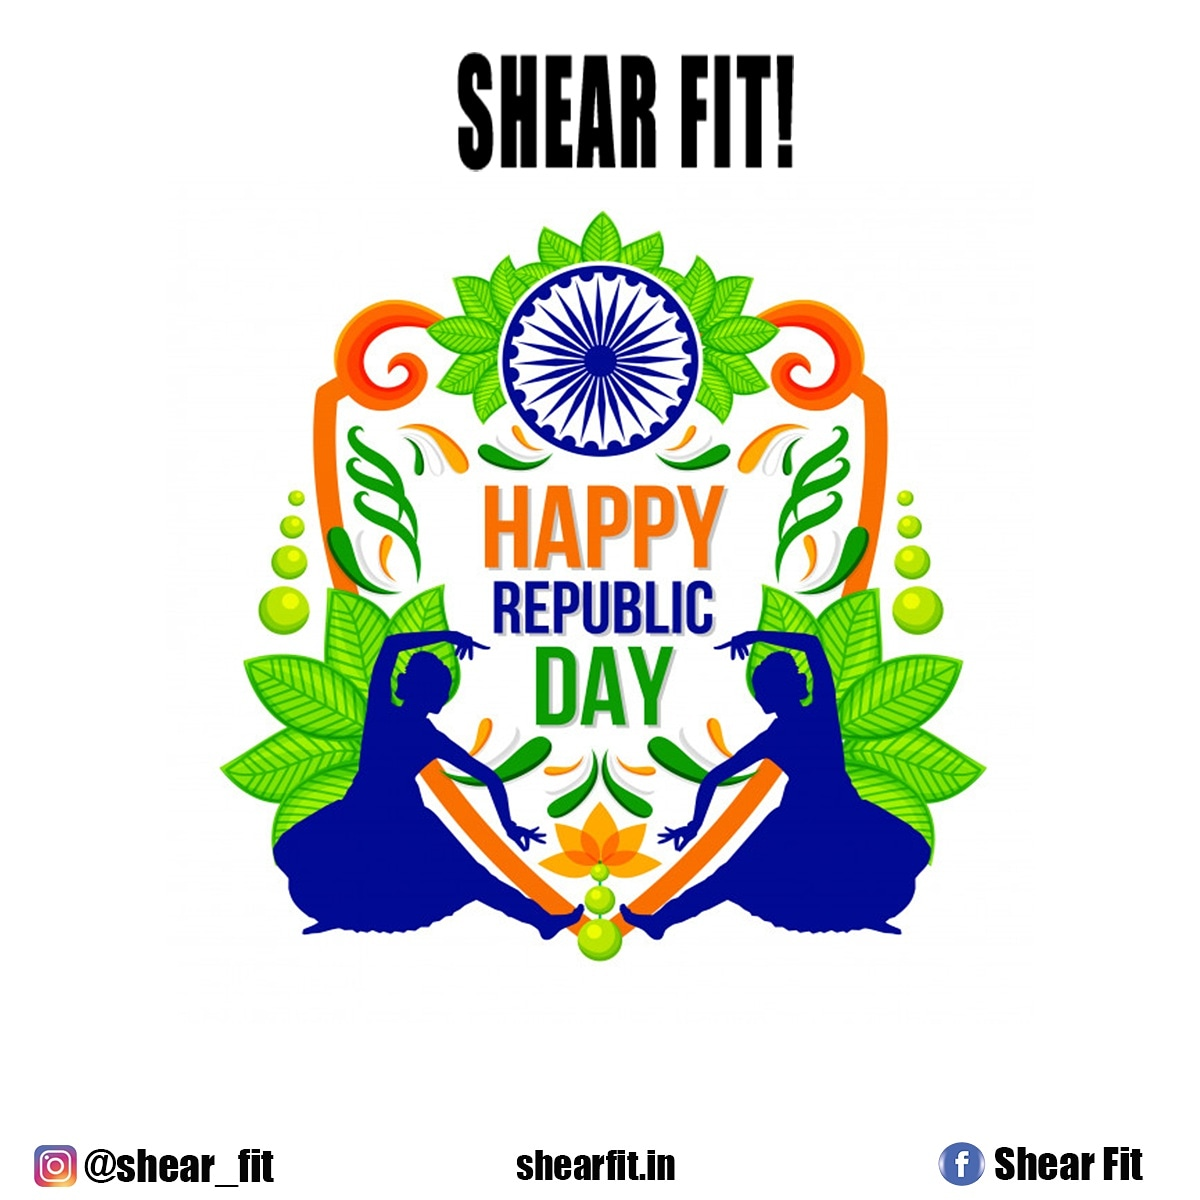 Freedom in the mind, strength in the words, pureness in our blood, Pride in our souls, zeal in our hearts, let's salute our nation onRepublic Day.Happy Republic Day2021! #RepublicDay #India #Indian #NationalDay #ShearFit #Fitness #Workout #FitGirl #FatToFit #GymLife #GymFreaks